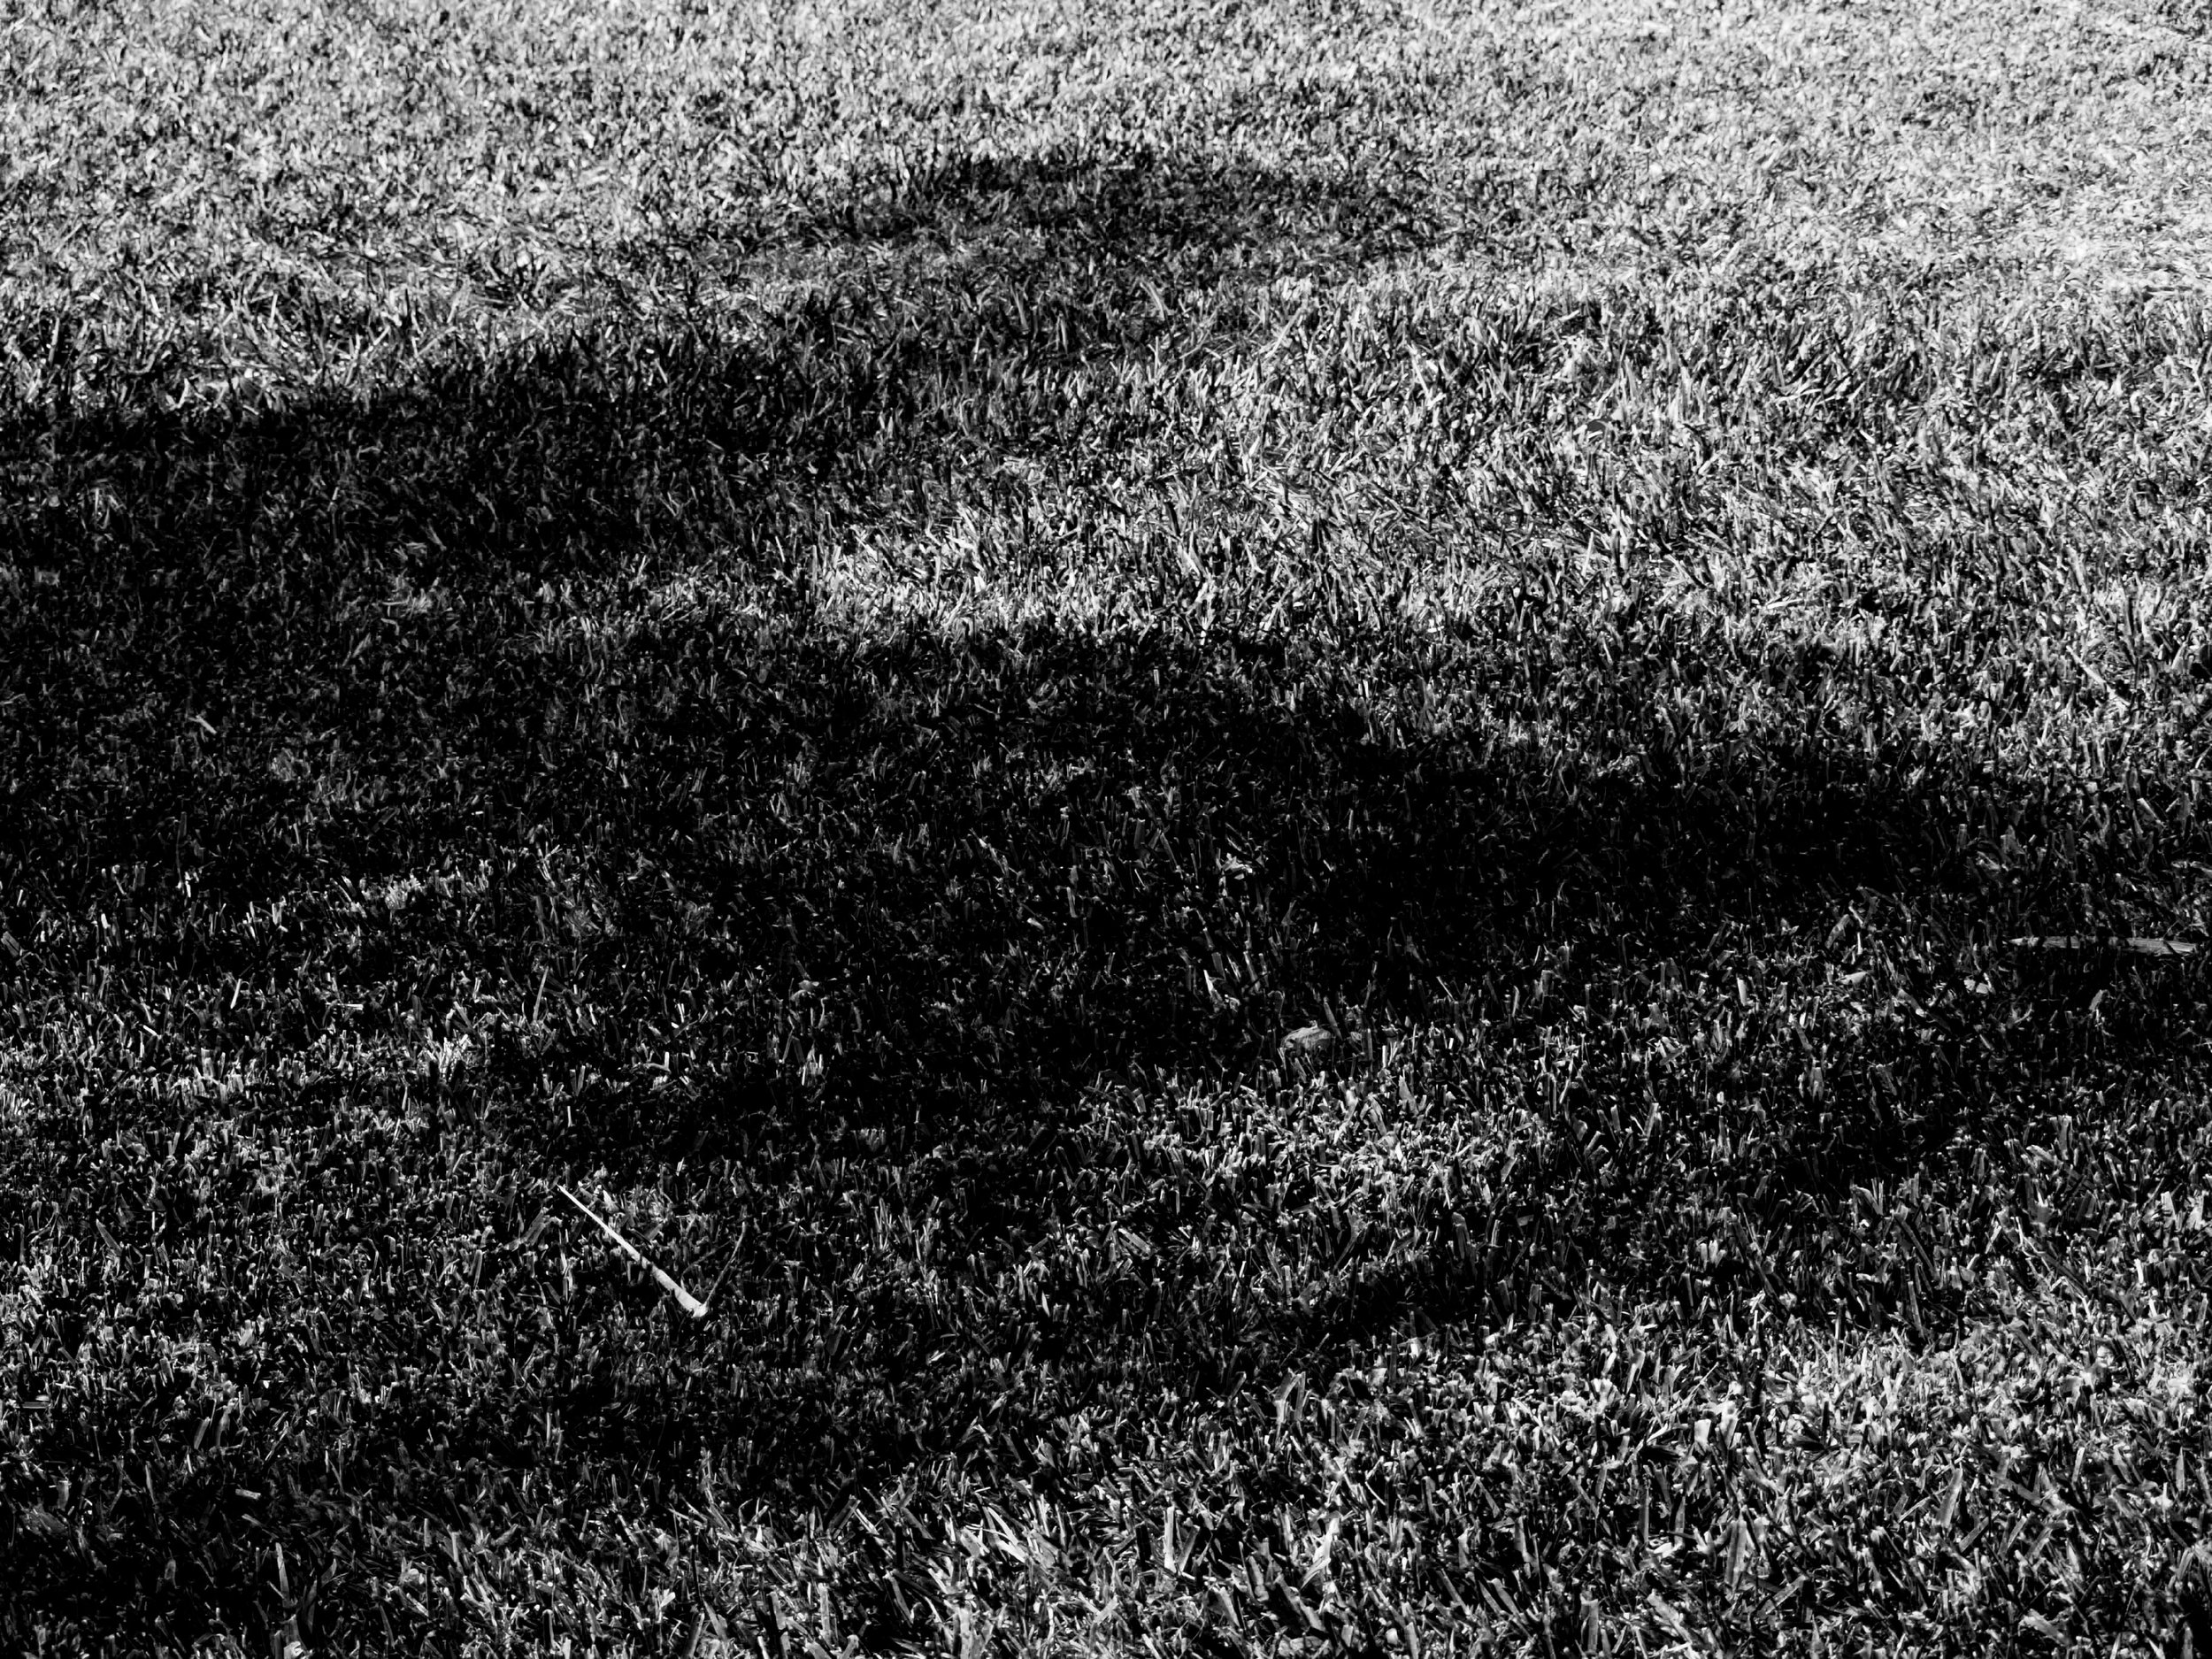 black and white grass photograph